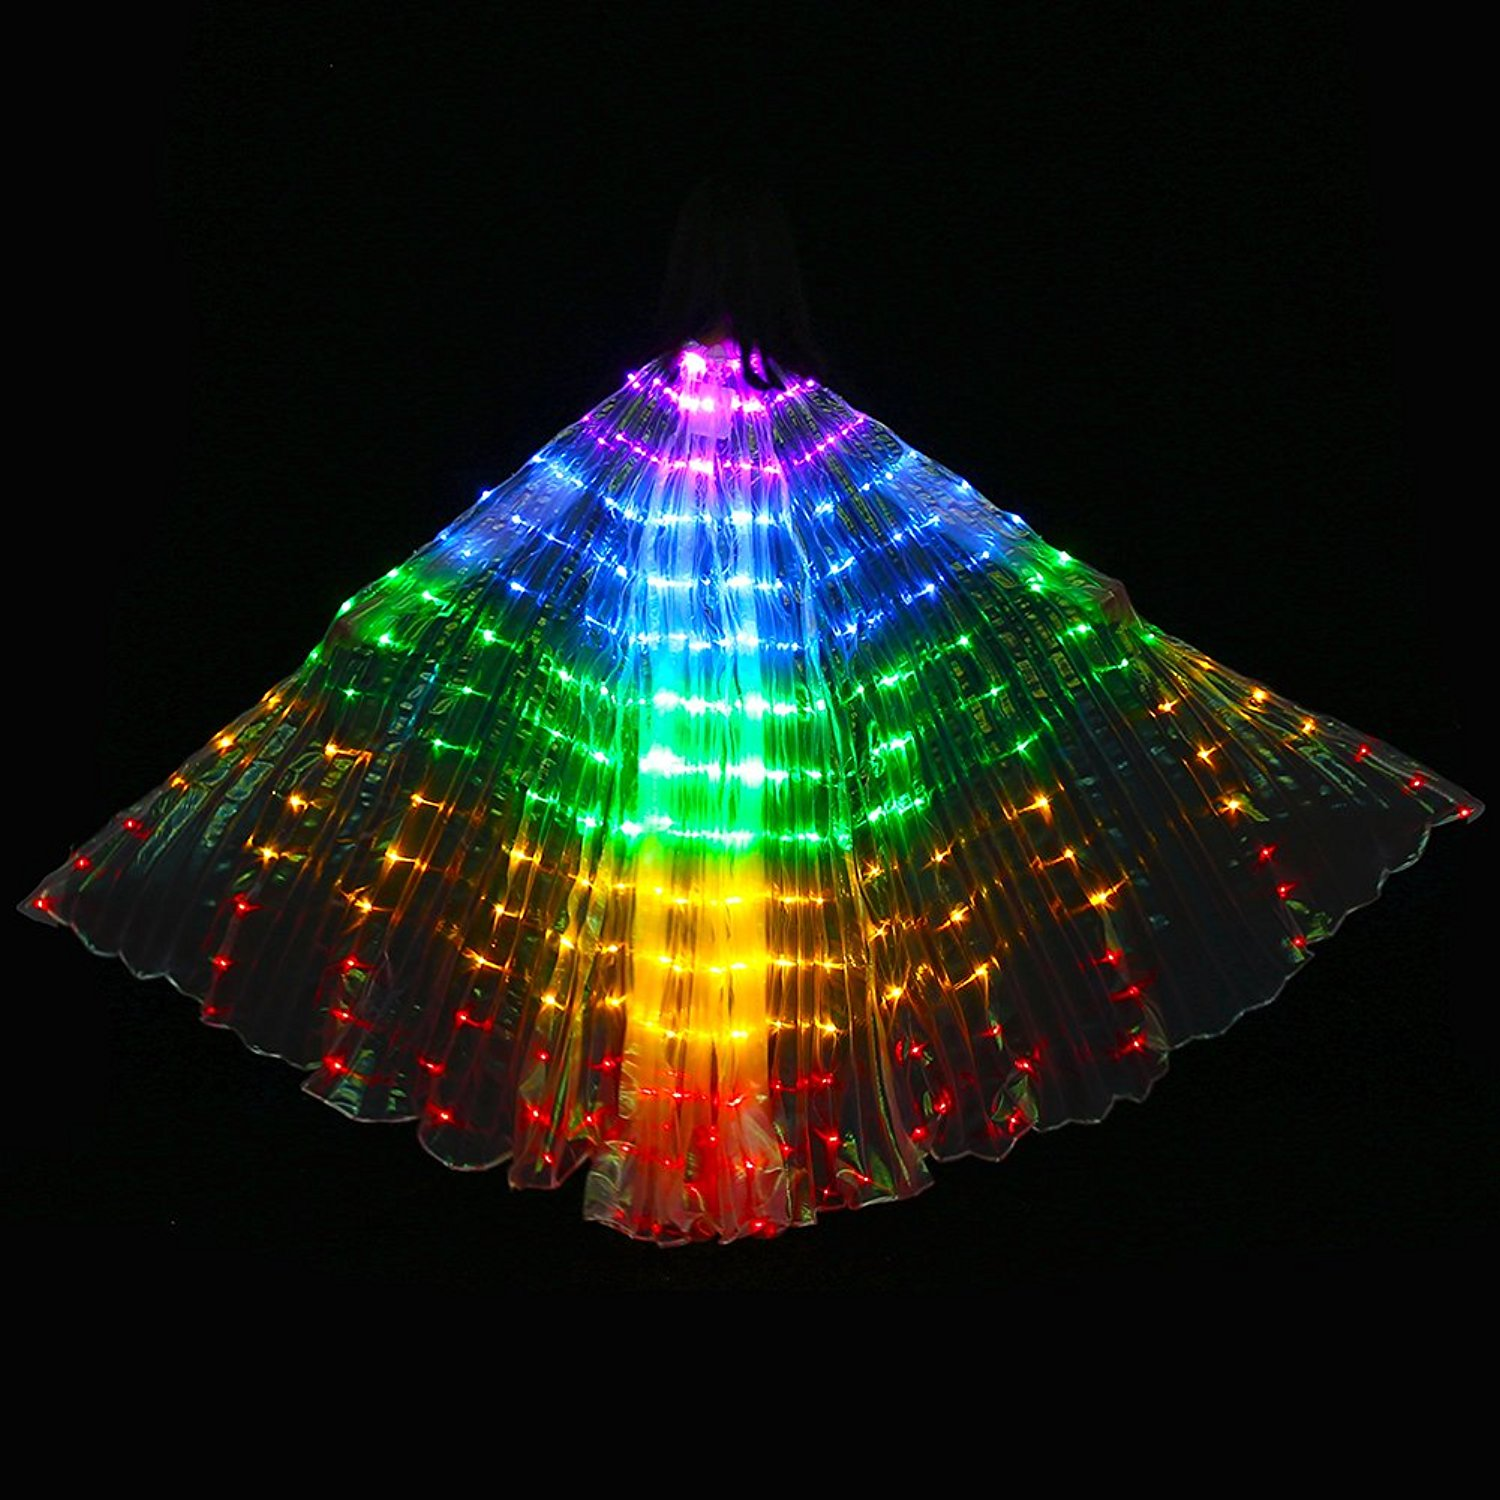 LED Isis Wings with Flexible Sticks - PURPLE BLUE GREEN YELLOW RED